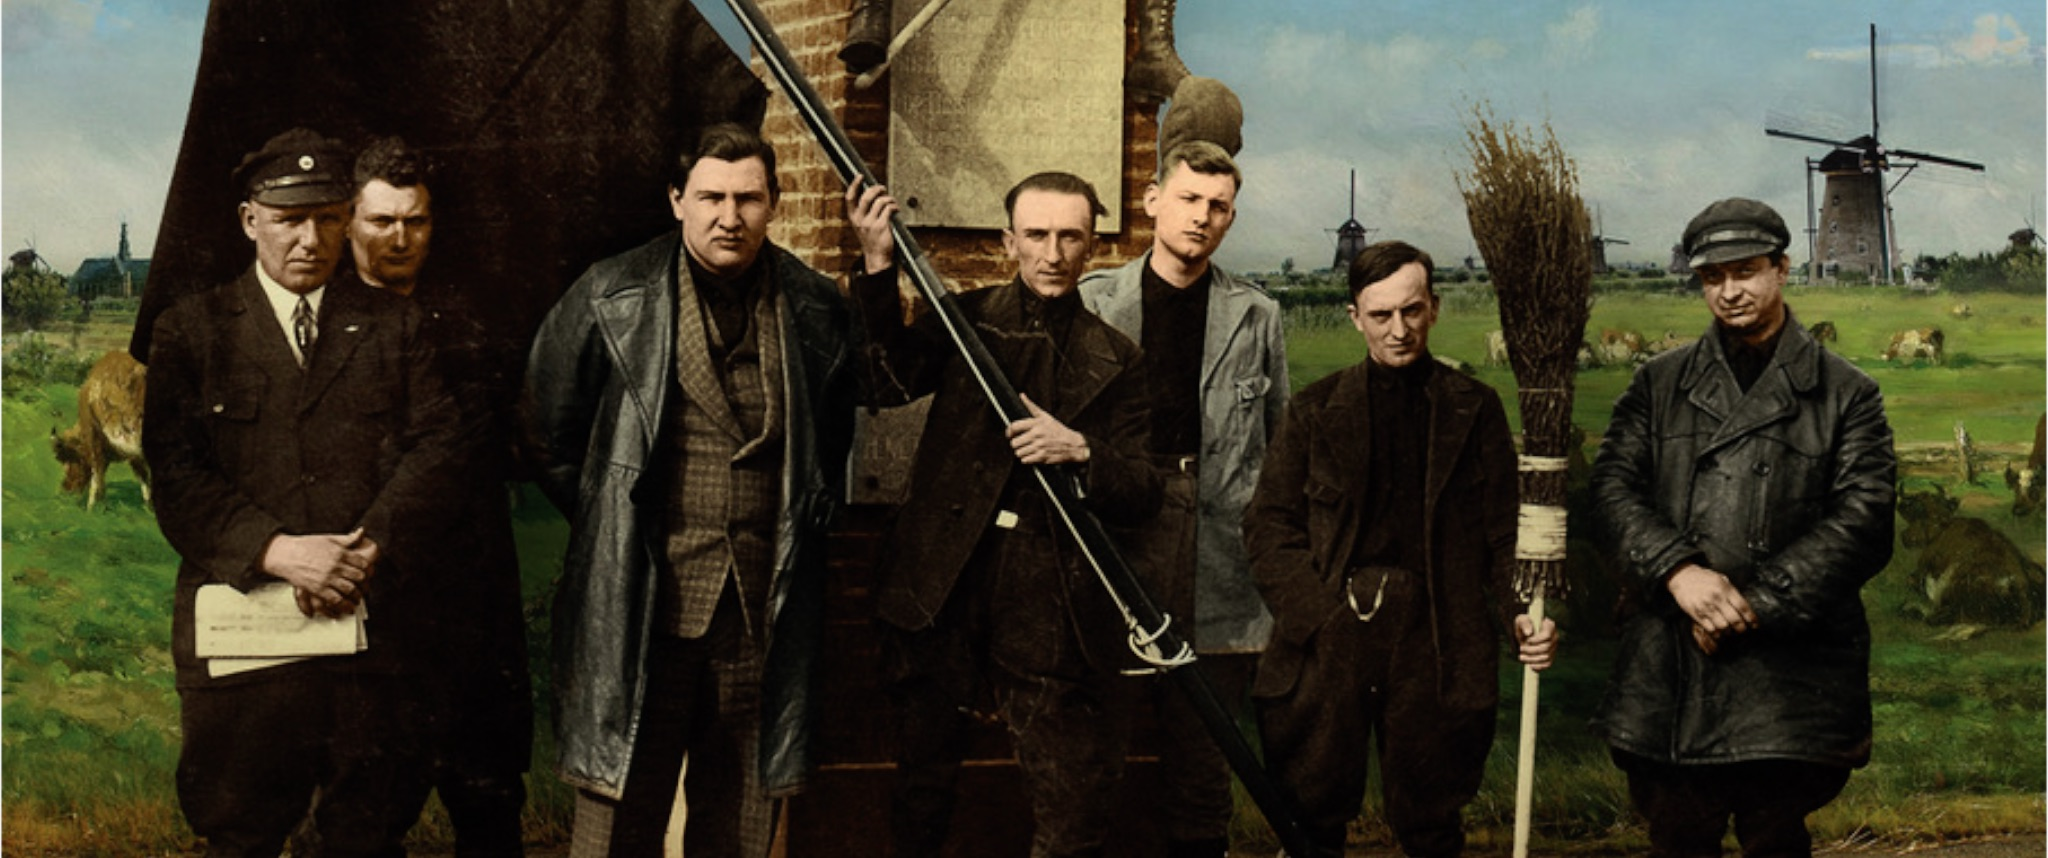 Dutch scenery, landscape, Fascism, Jan Baars, Haighton, zwarthemden, blackshirts, Algemene Nederlandse Fascisten Bond, General Dutch Fascist Association, De Bezem, The Broom, populism, collector